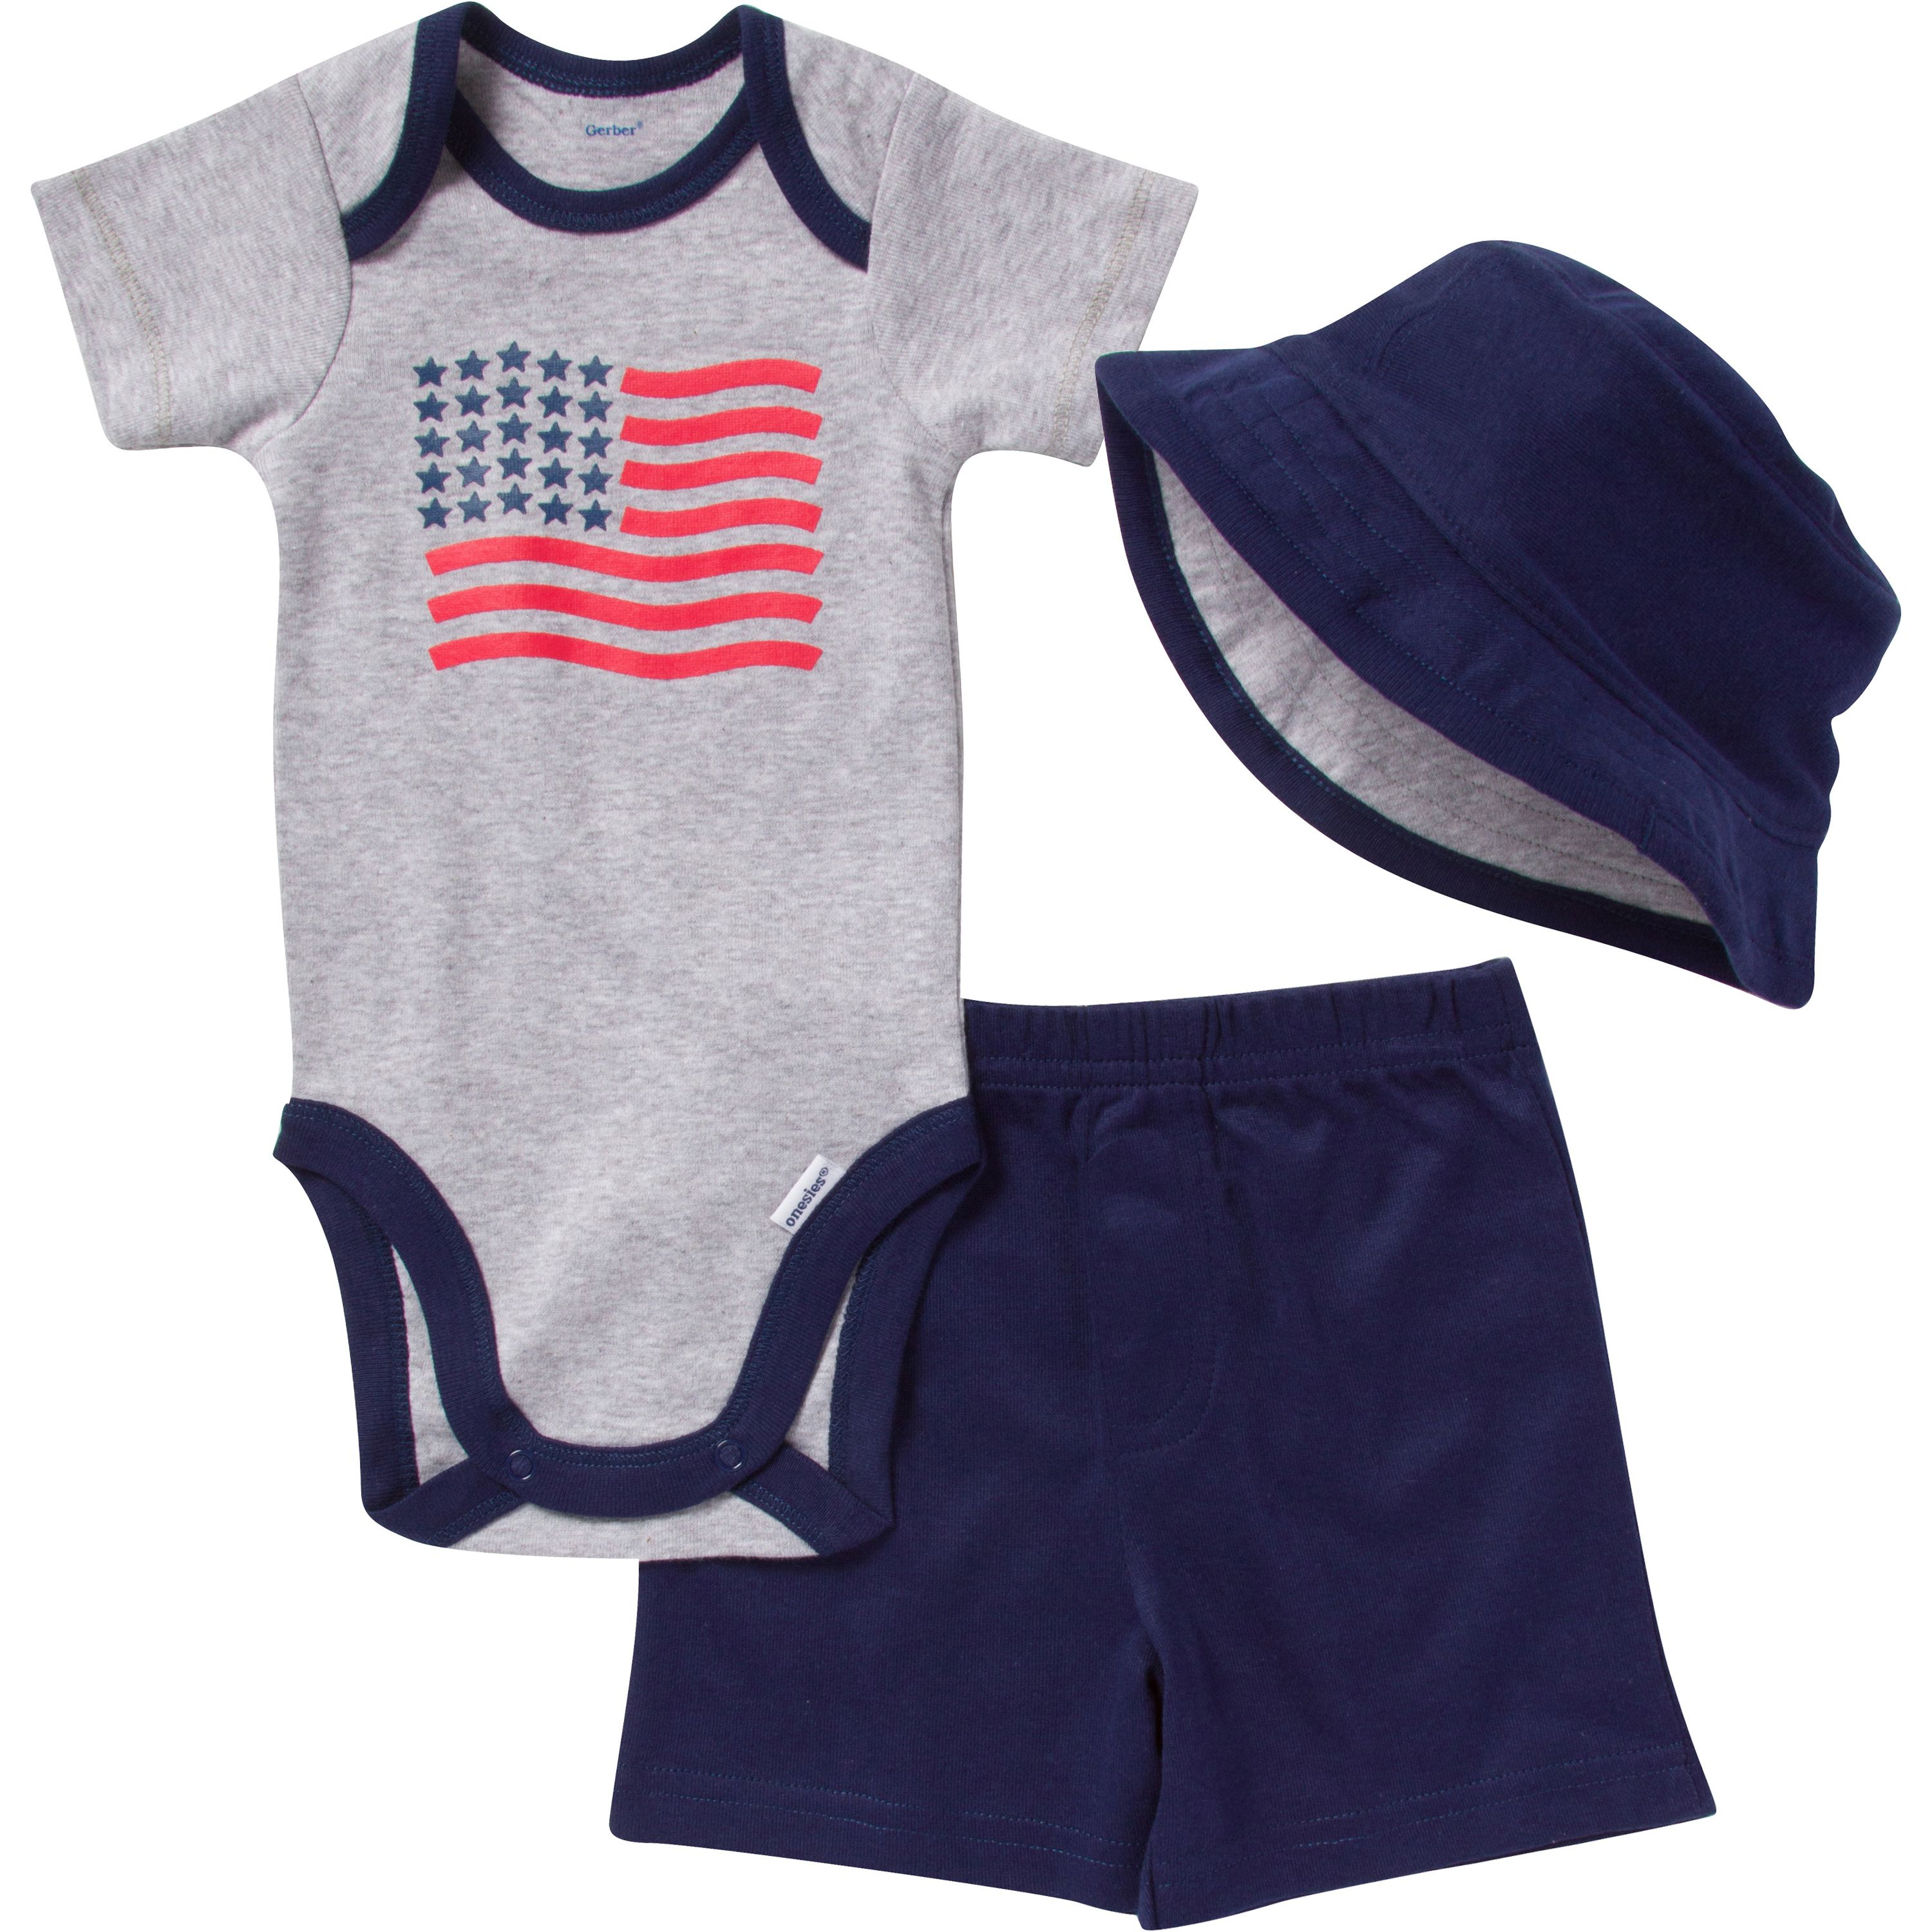 Baby boys will look very patriotic in this flag outfit perfect for